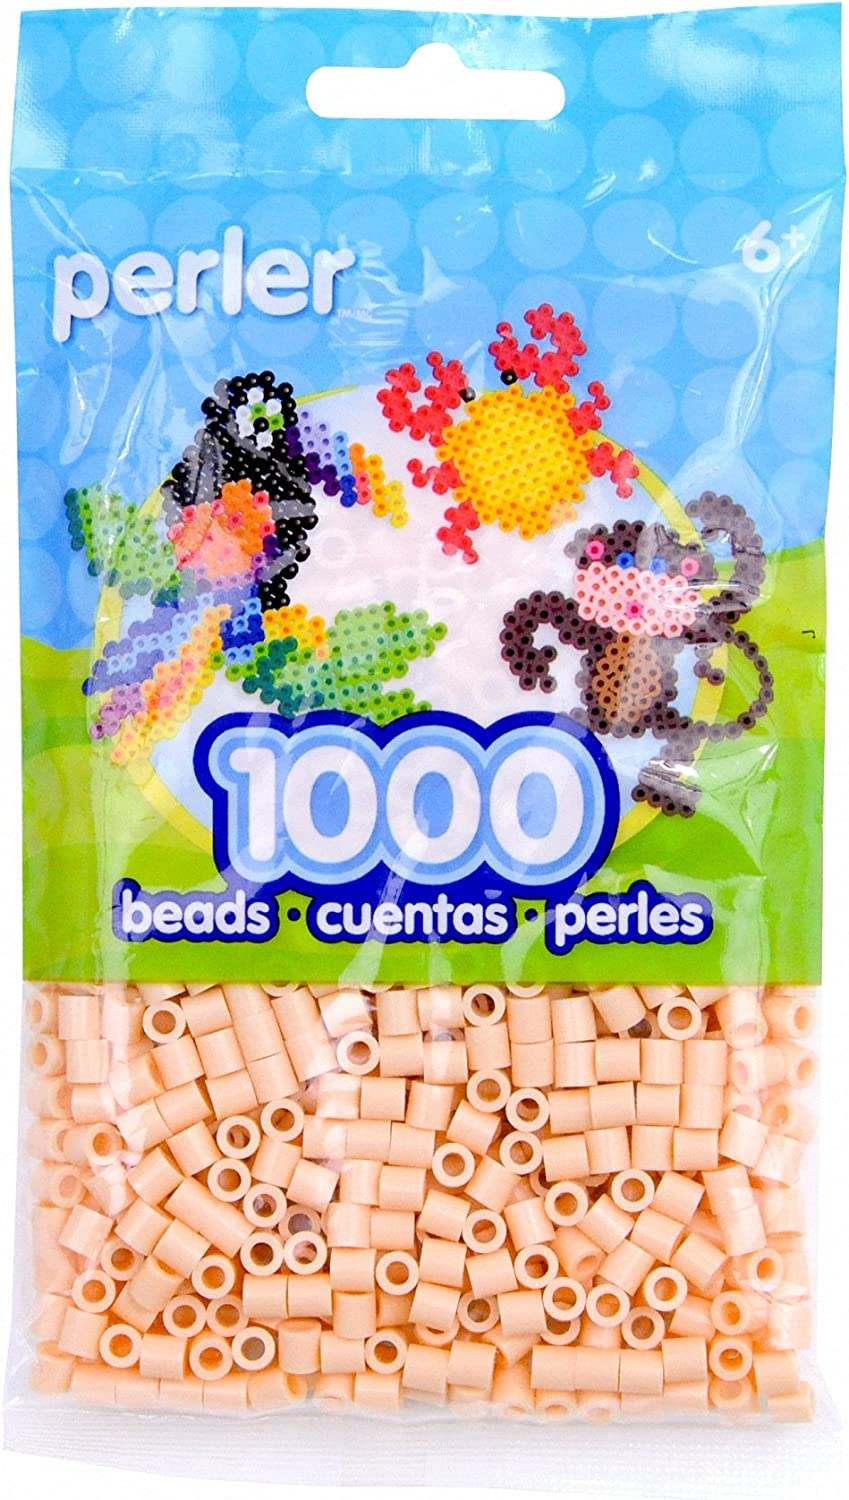 Perler Beads New arrival Fuse for Crafts pcs 1000 Inventory cleanup selling sale Sand